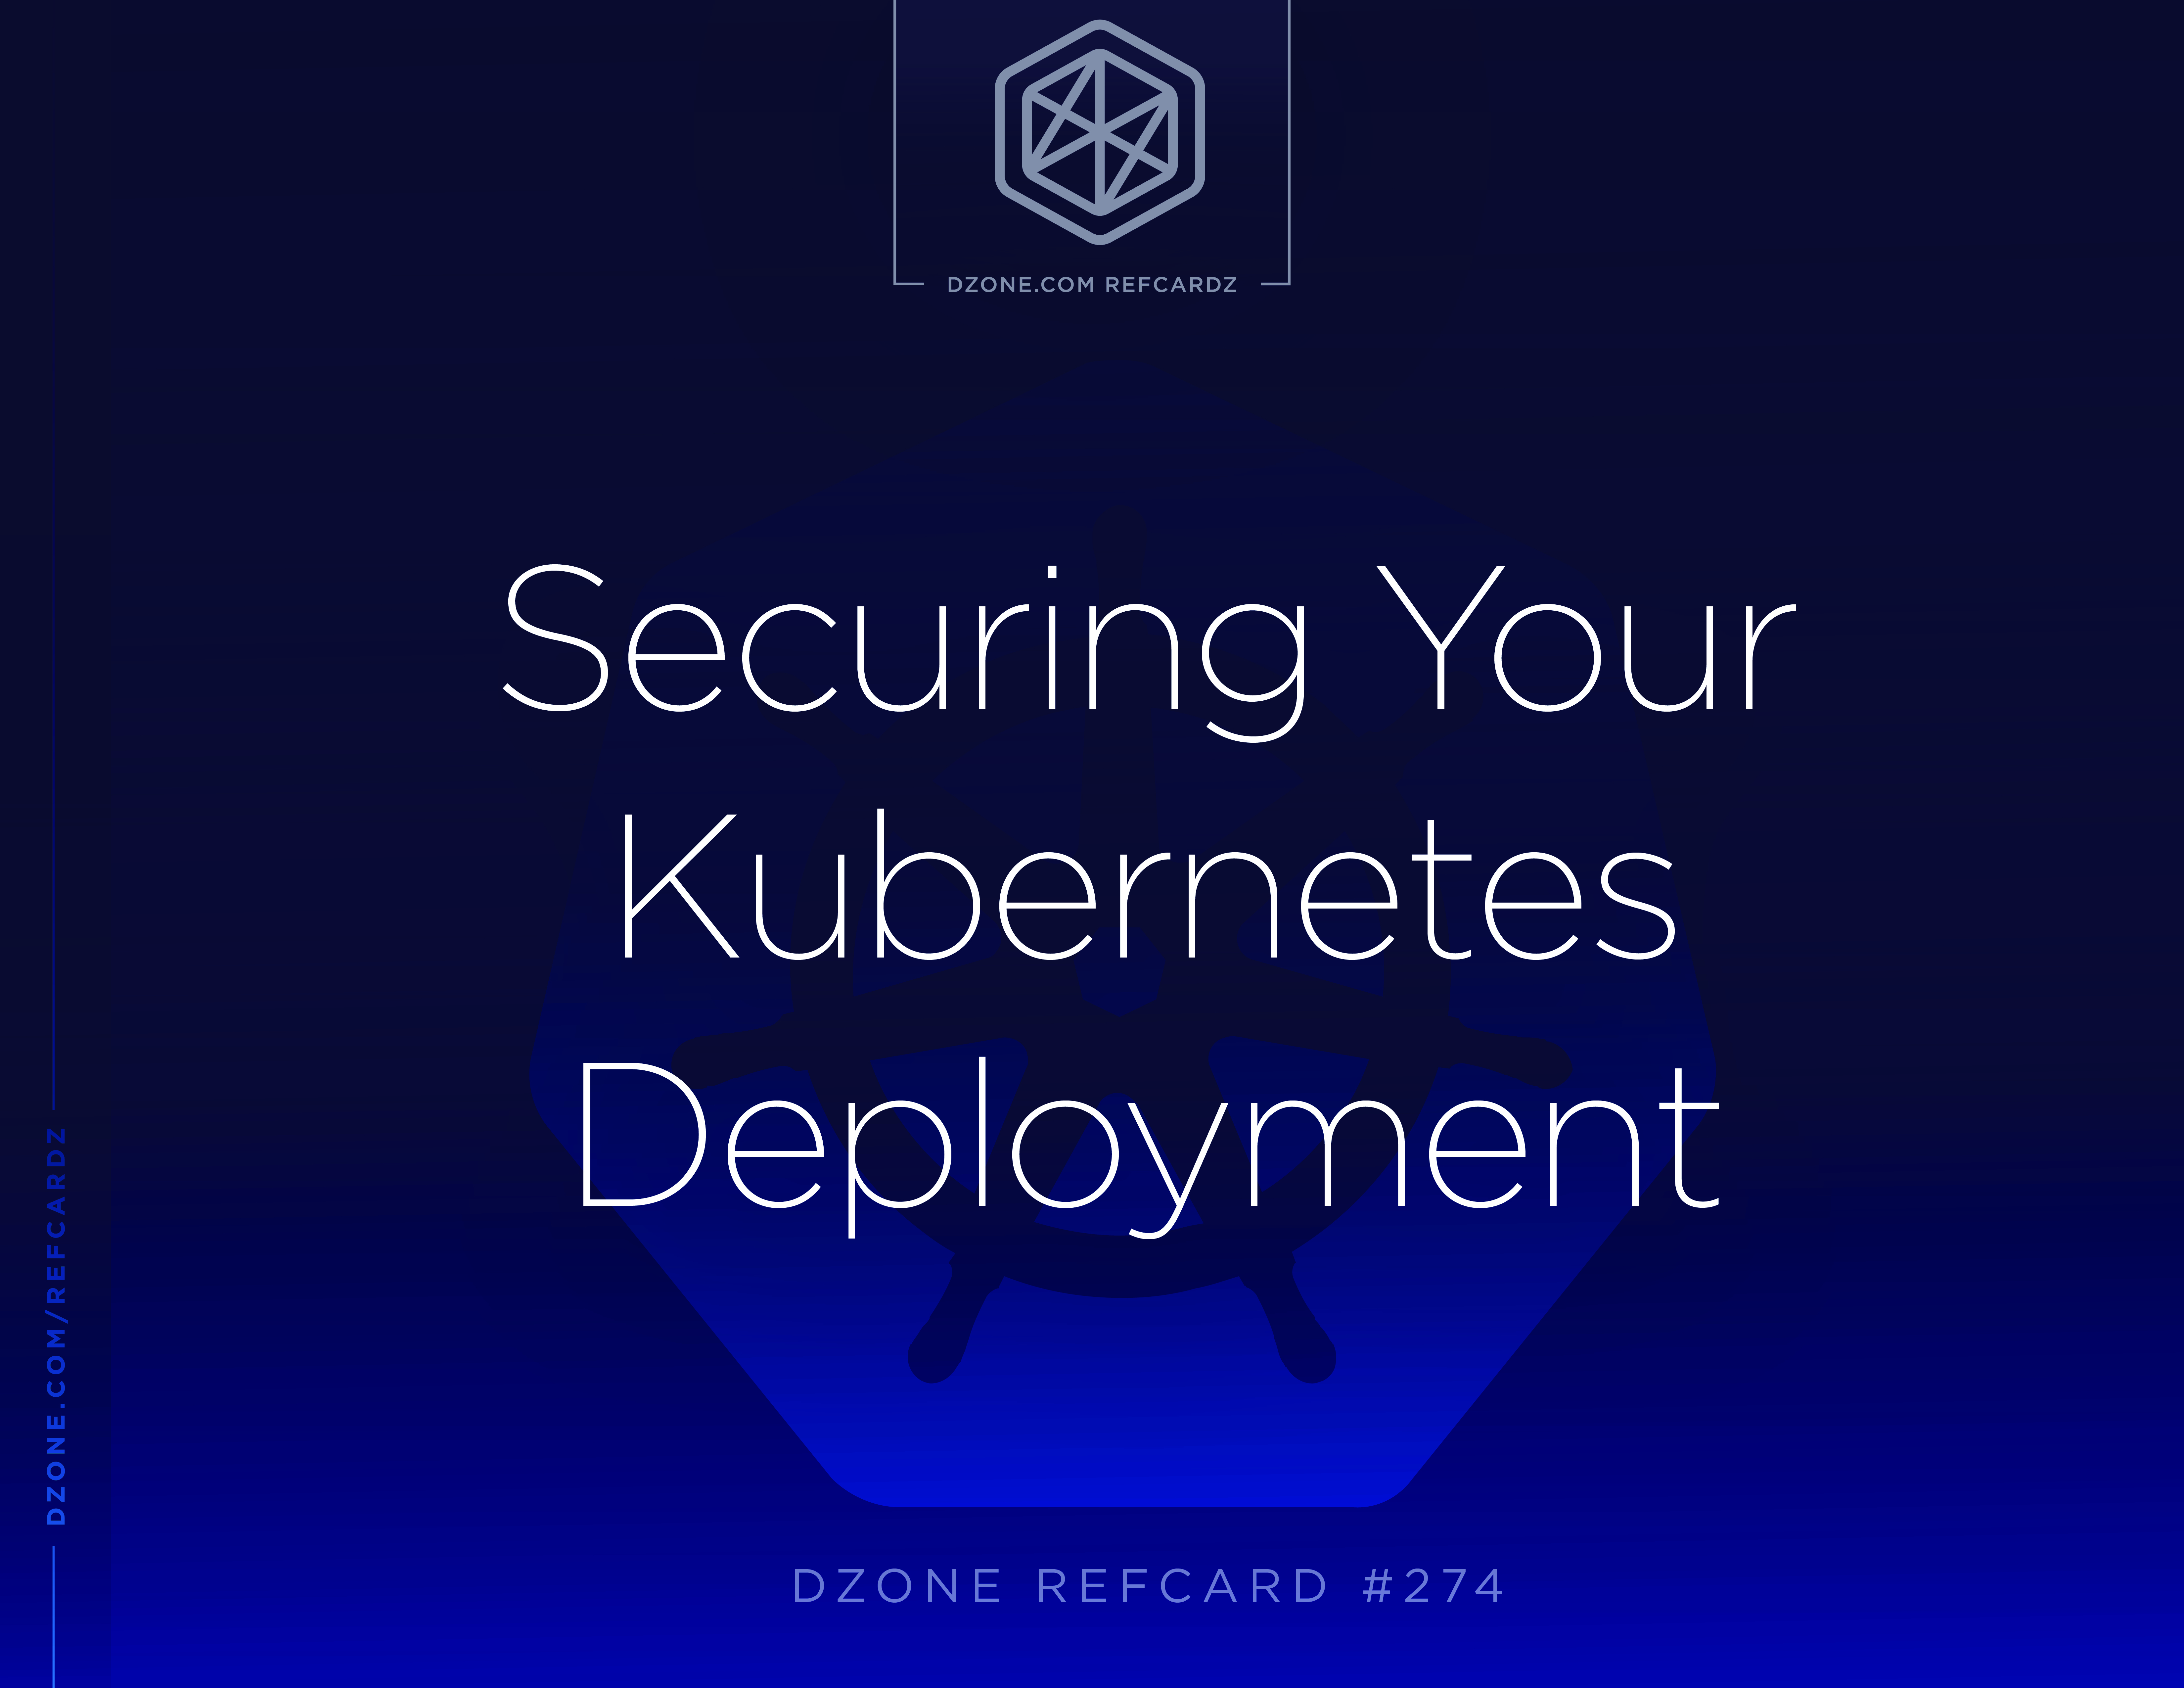 Securing Your Kubernetes Deployment